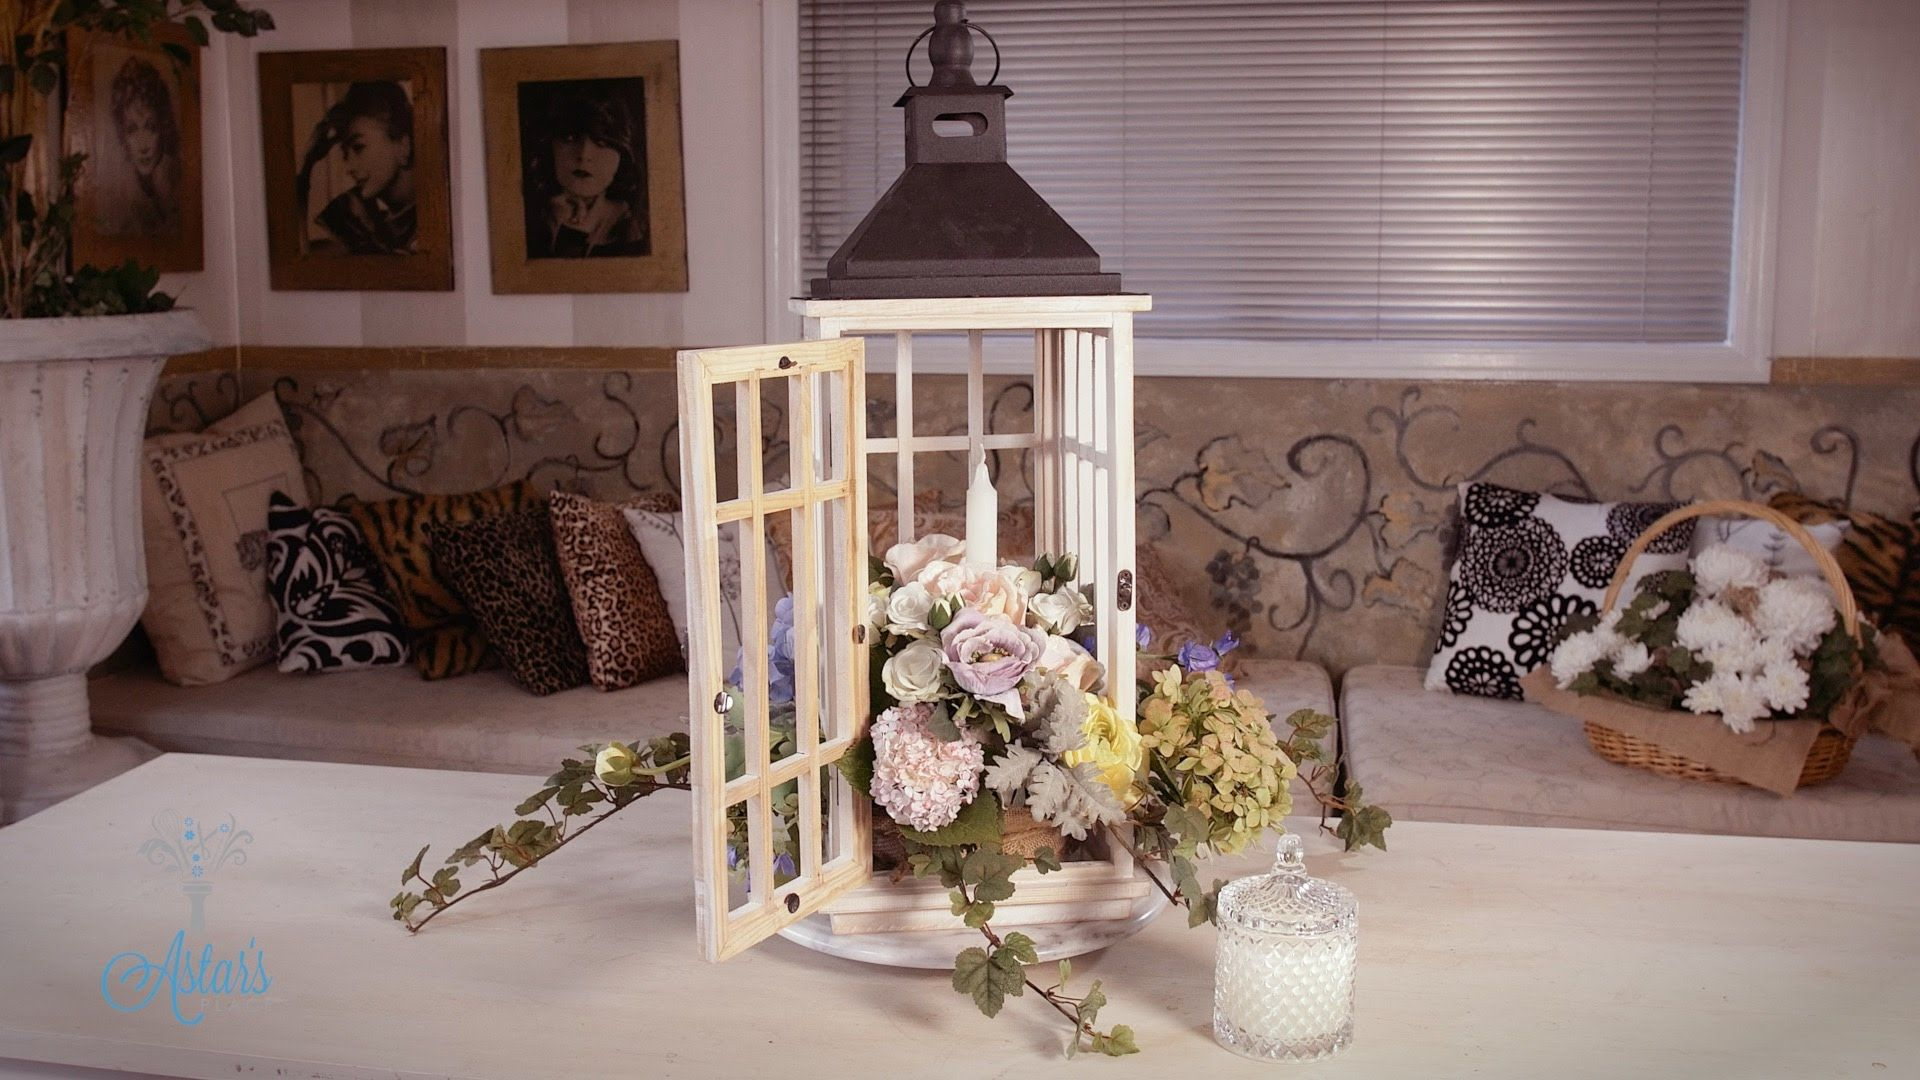 Wedding decorations hd  Shabby Chic Lantern Floristry Arrangement  Cutting flowers